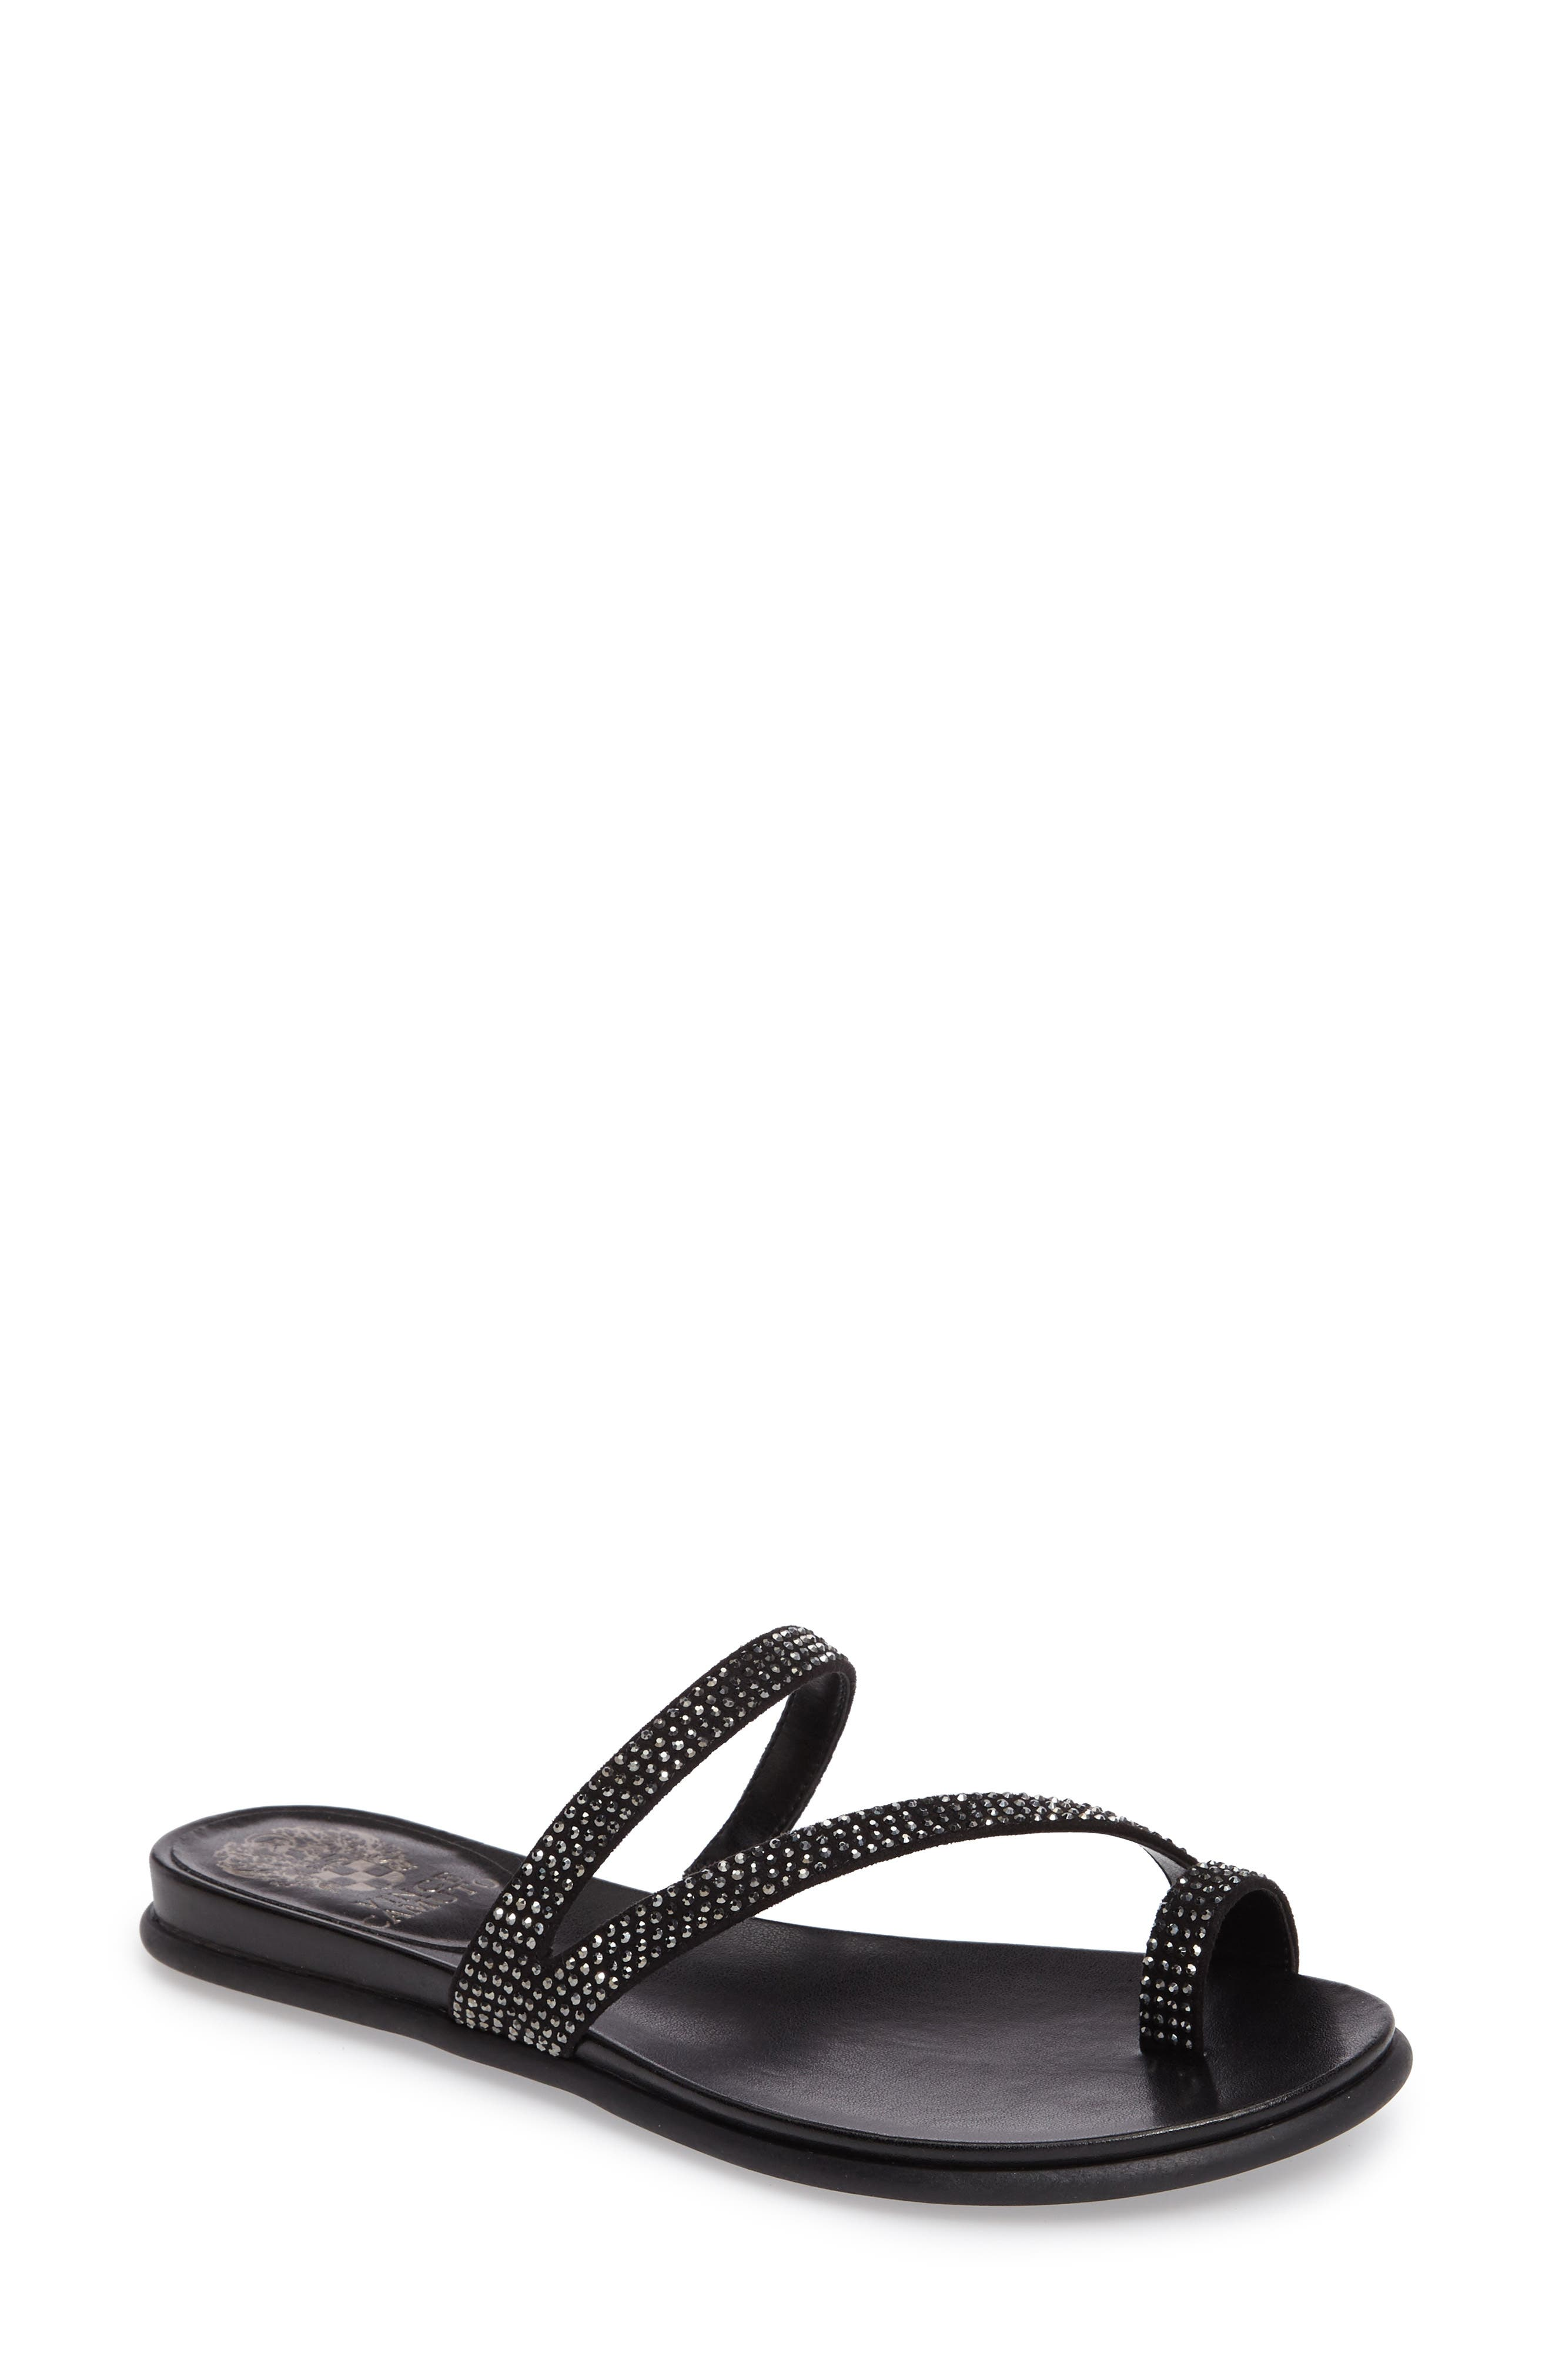 Evina Sandal,                         Main,                         color, 001